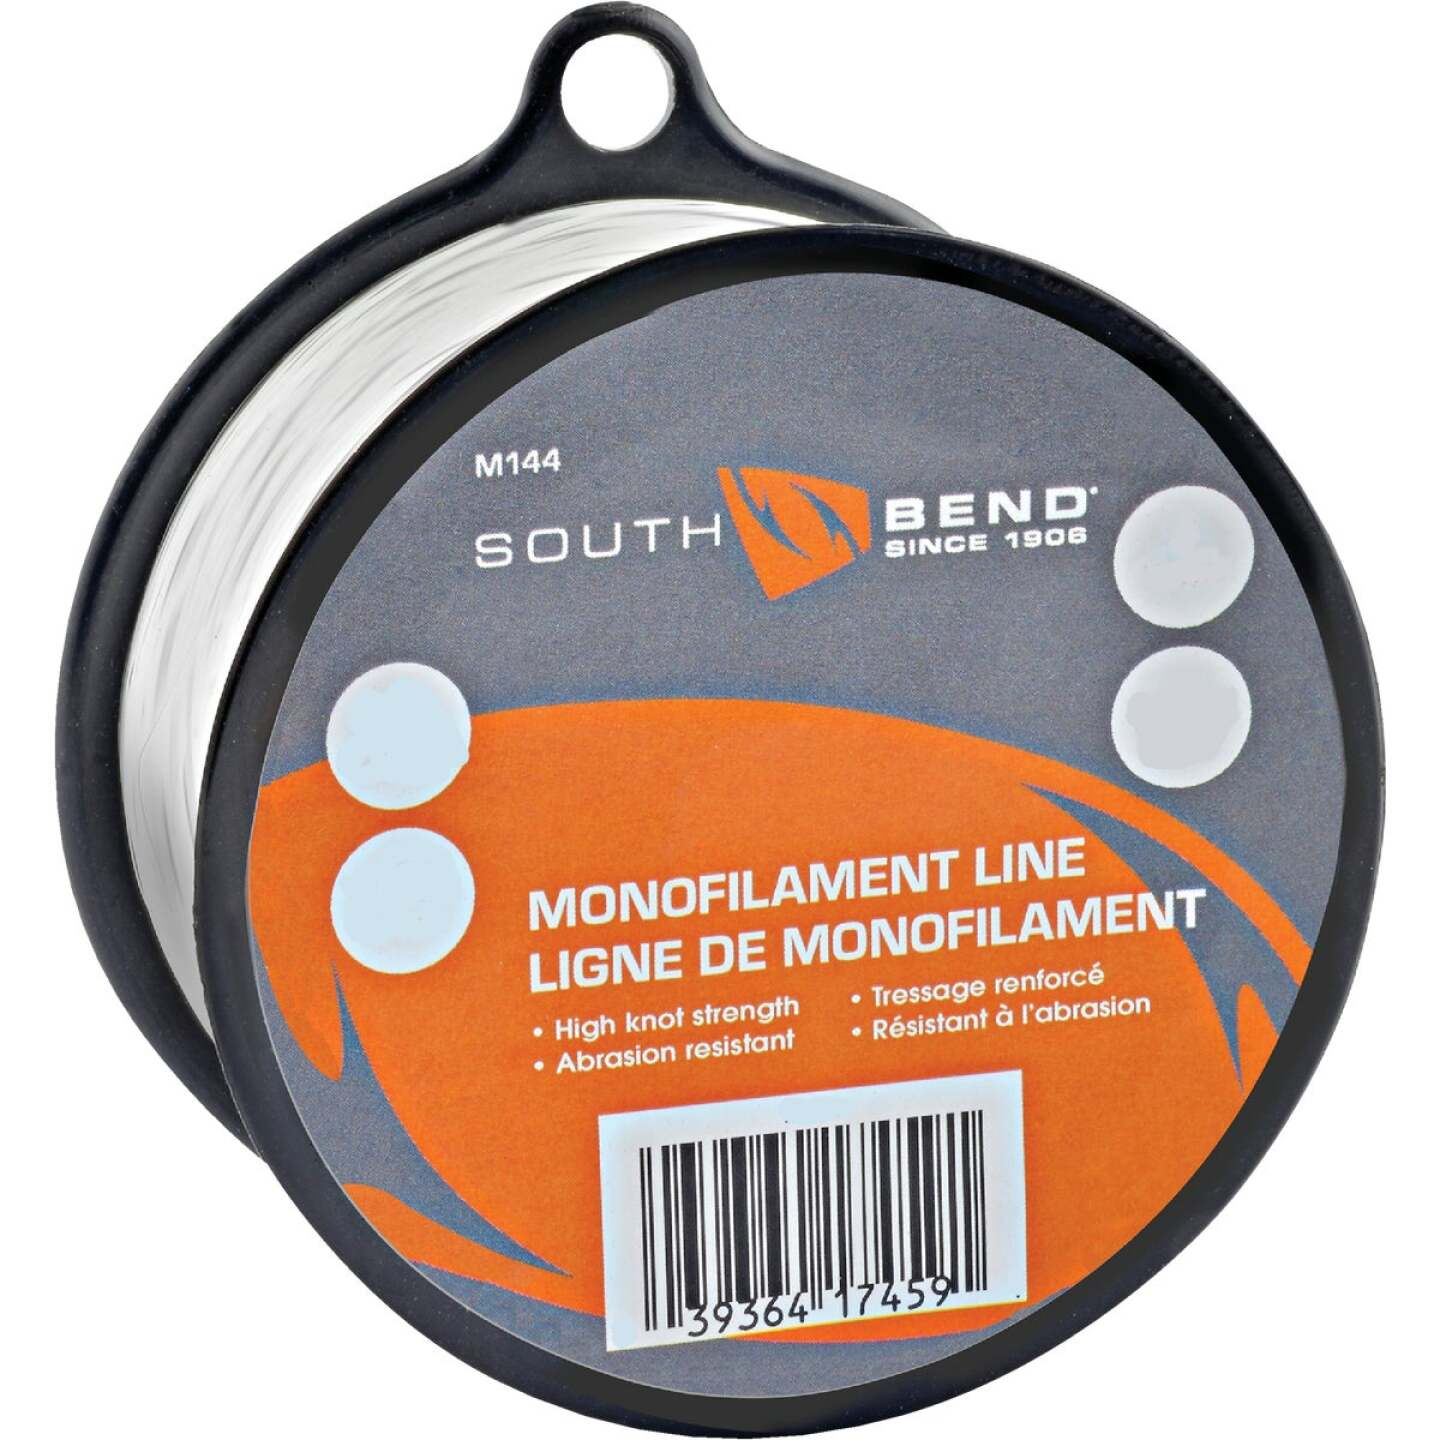 SouthBend 4 Lb. 1125 Yd. Clear Monofilament Fishing Line Image 1